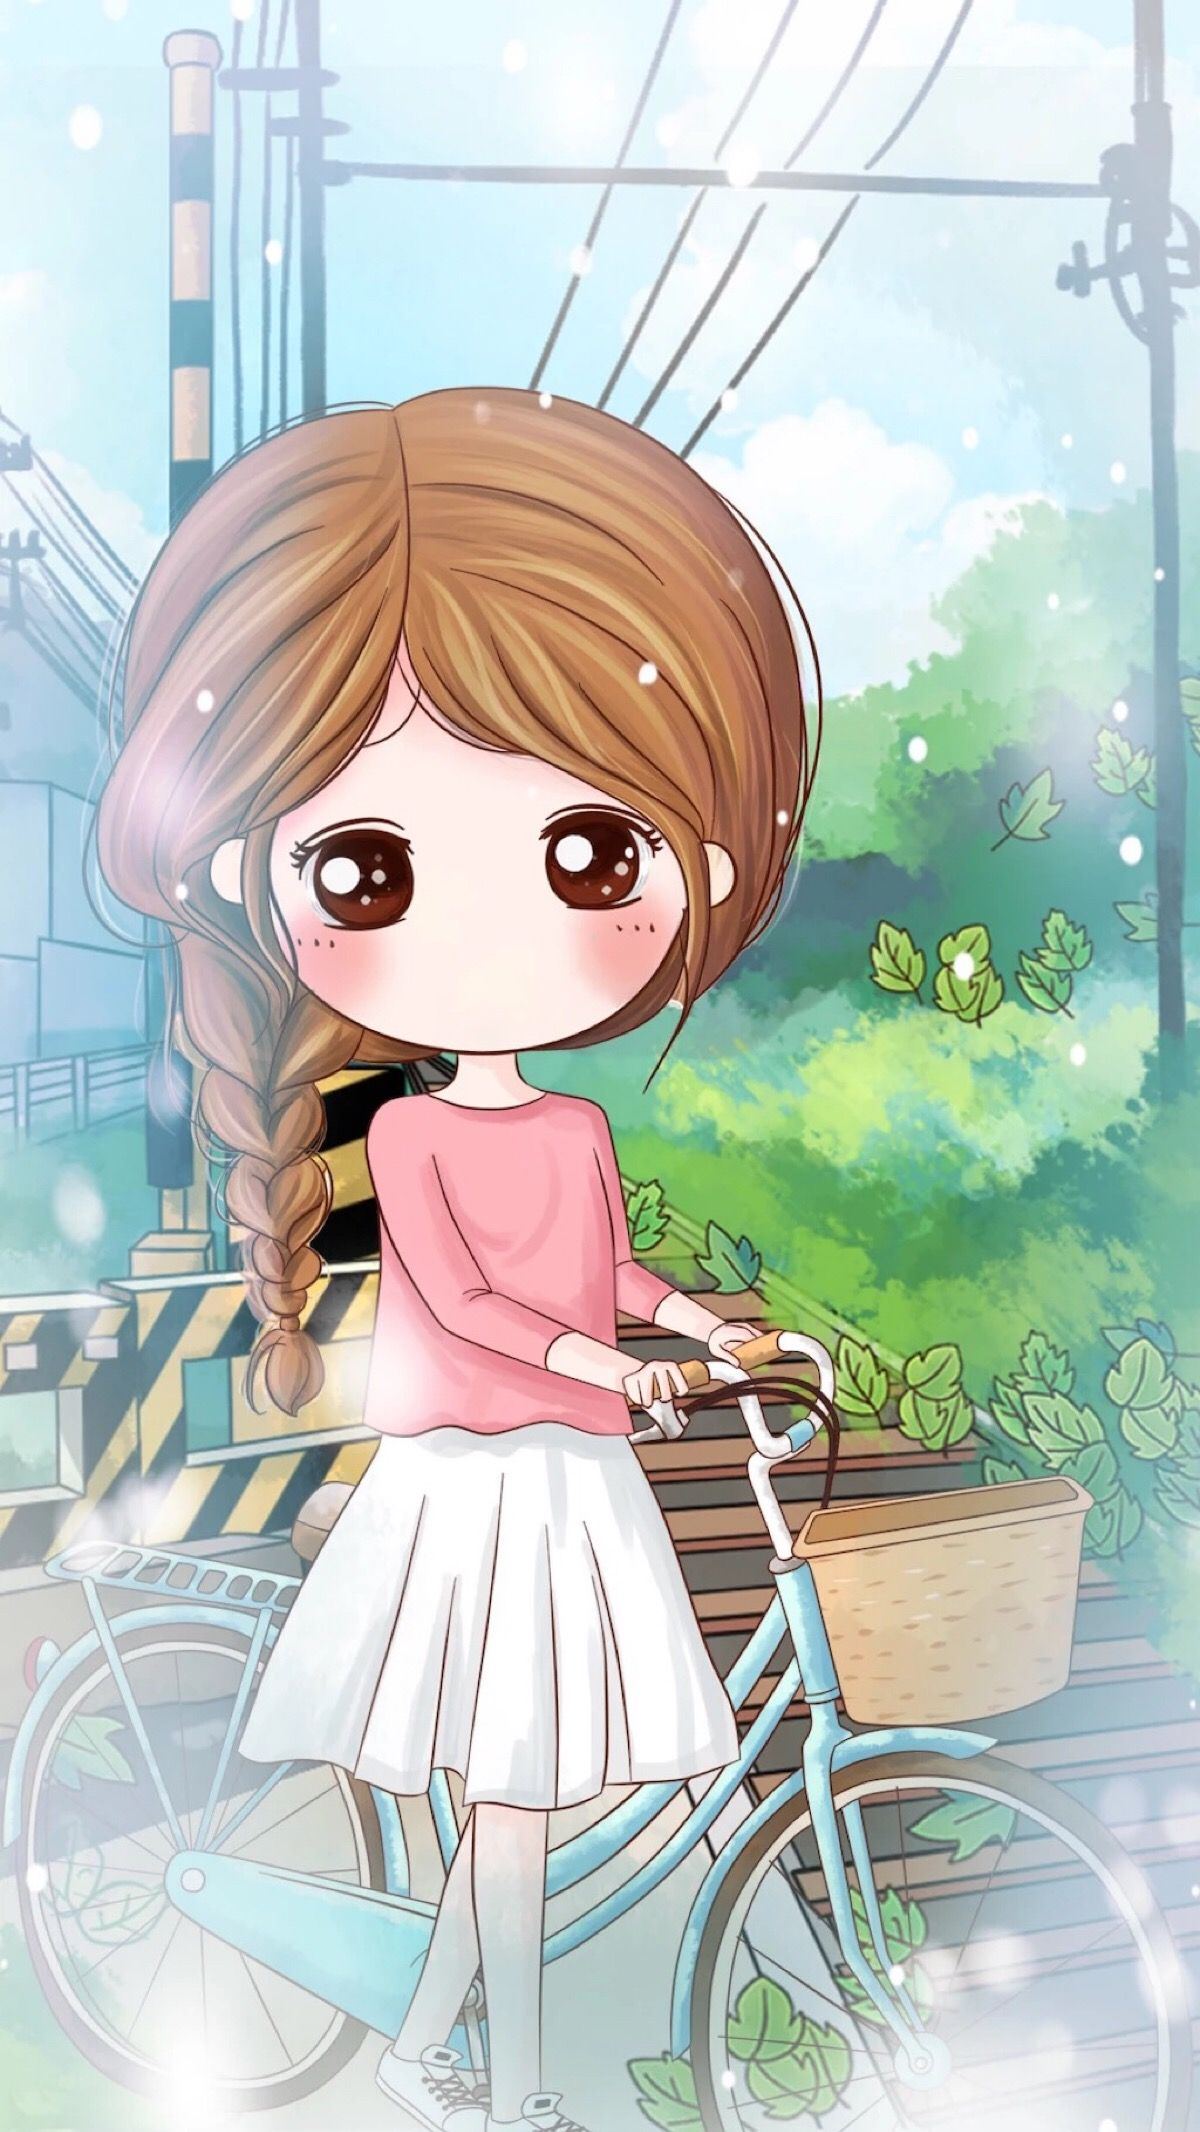 pinatul padia on cycle | pinterest | chibi, chibi girl and anime